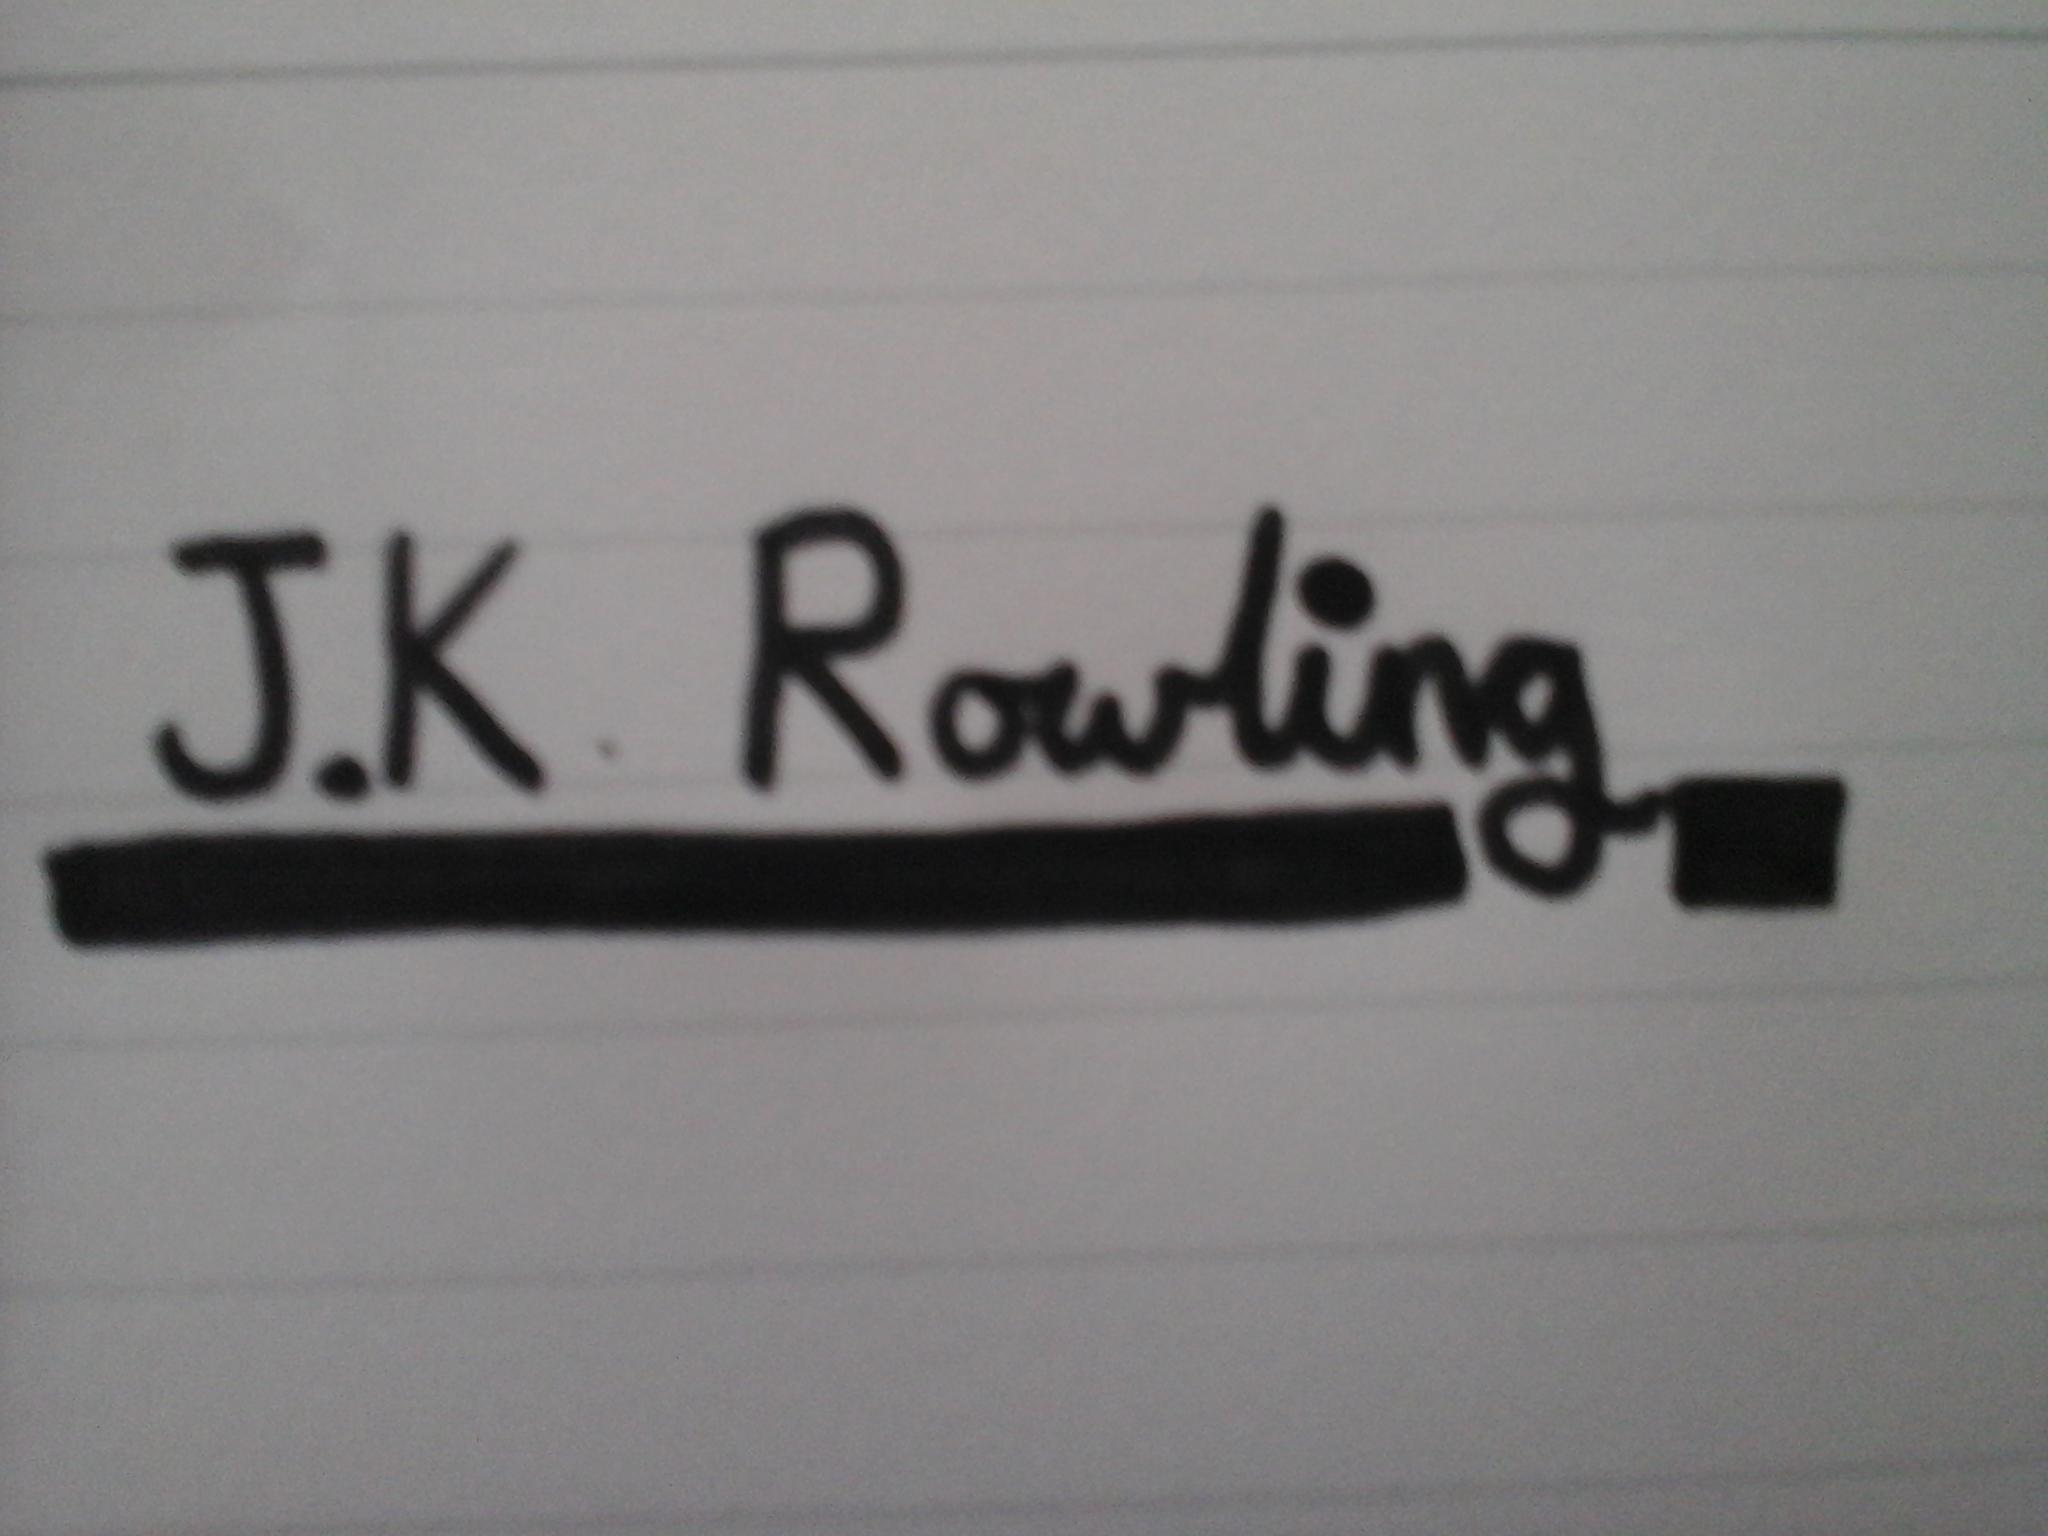 Do you know aboubt J.K Rowling?